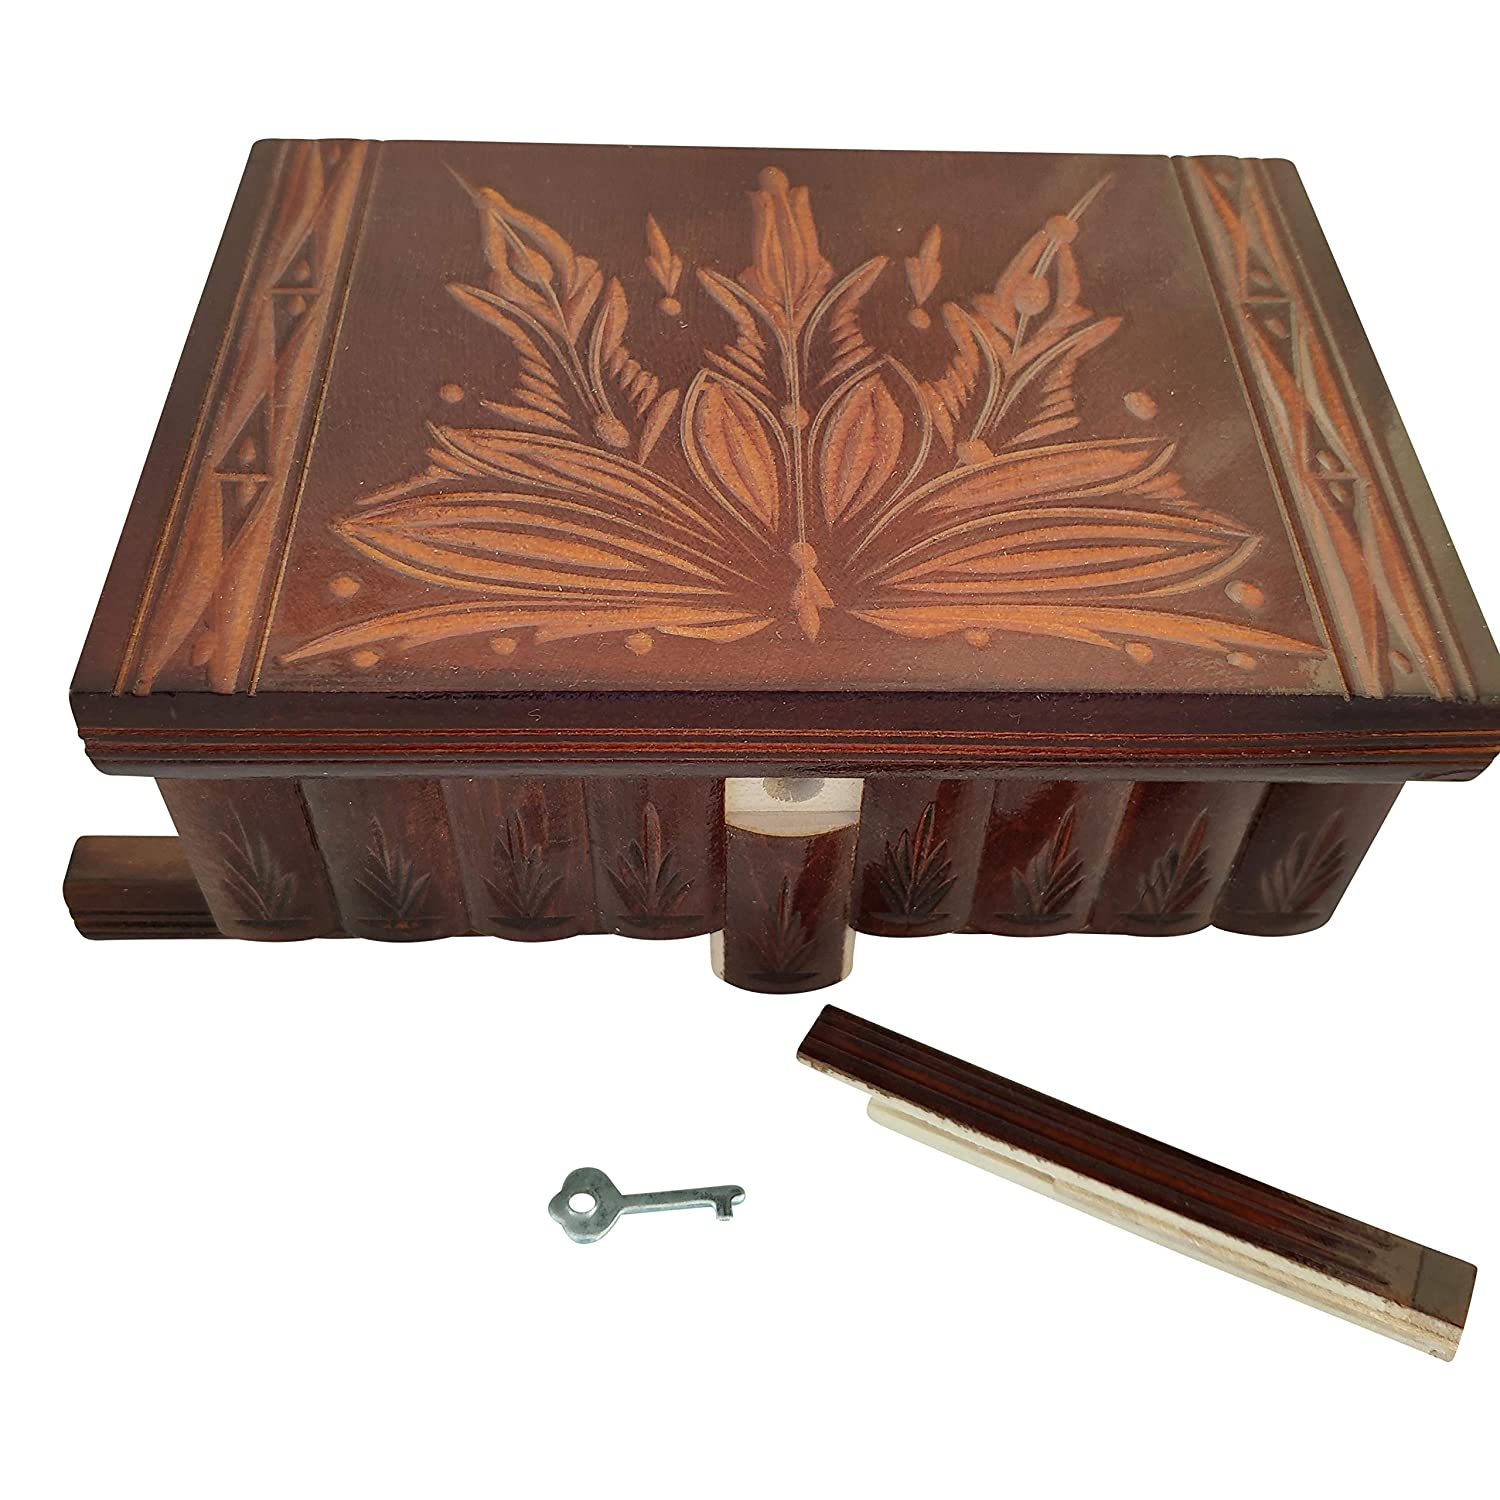 Decorative Storage Box for Jewelry - Top Quality Elegant Box with Easy Open//Closing Mechanism Great Gift Reddish-Brown Toys Large Puzzles Handmade Wooden Puzzle Boxes with Hidden Compartment